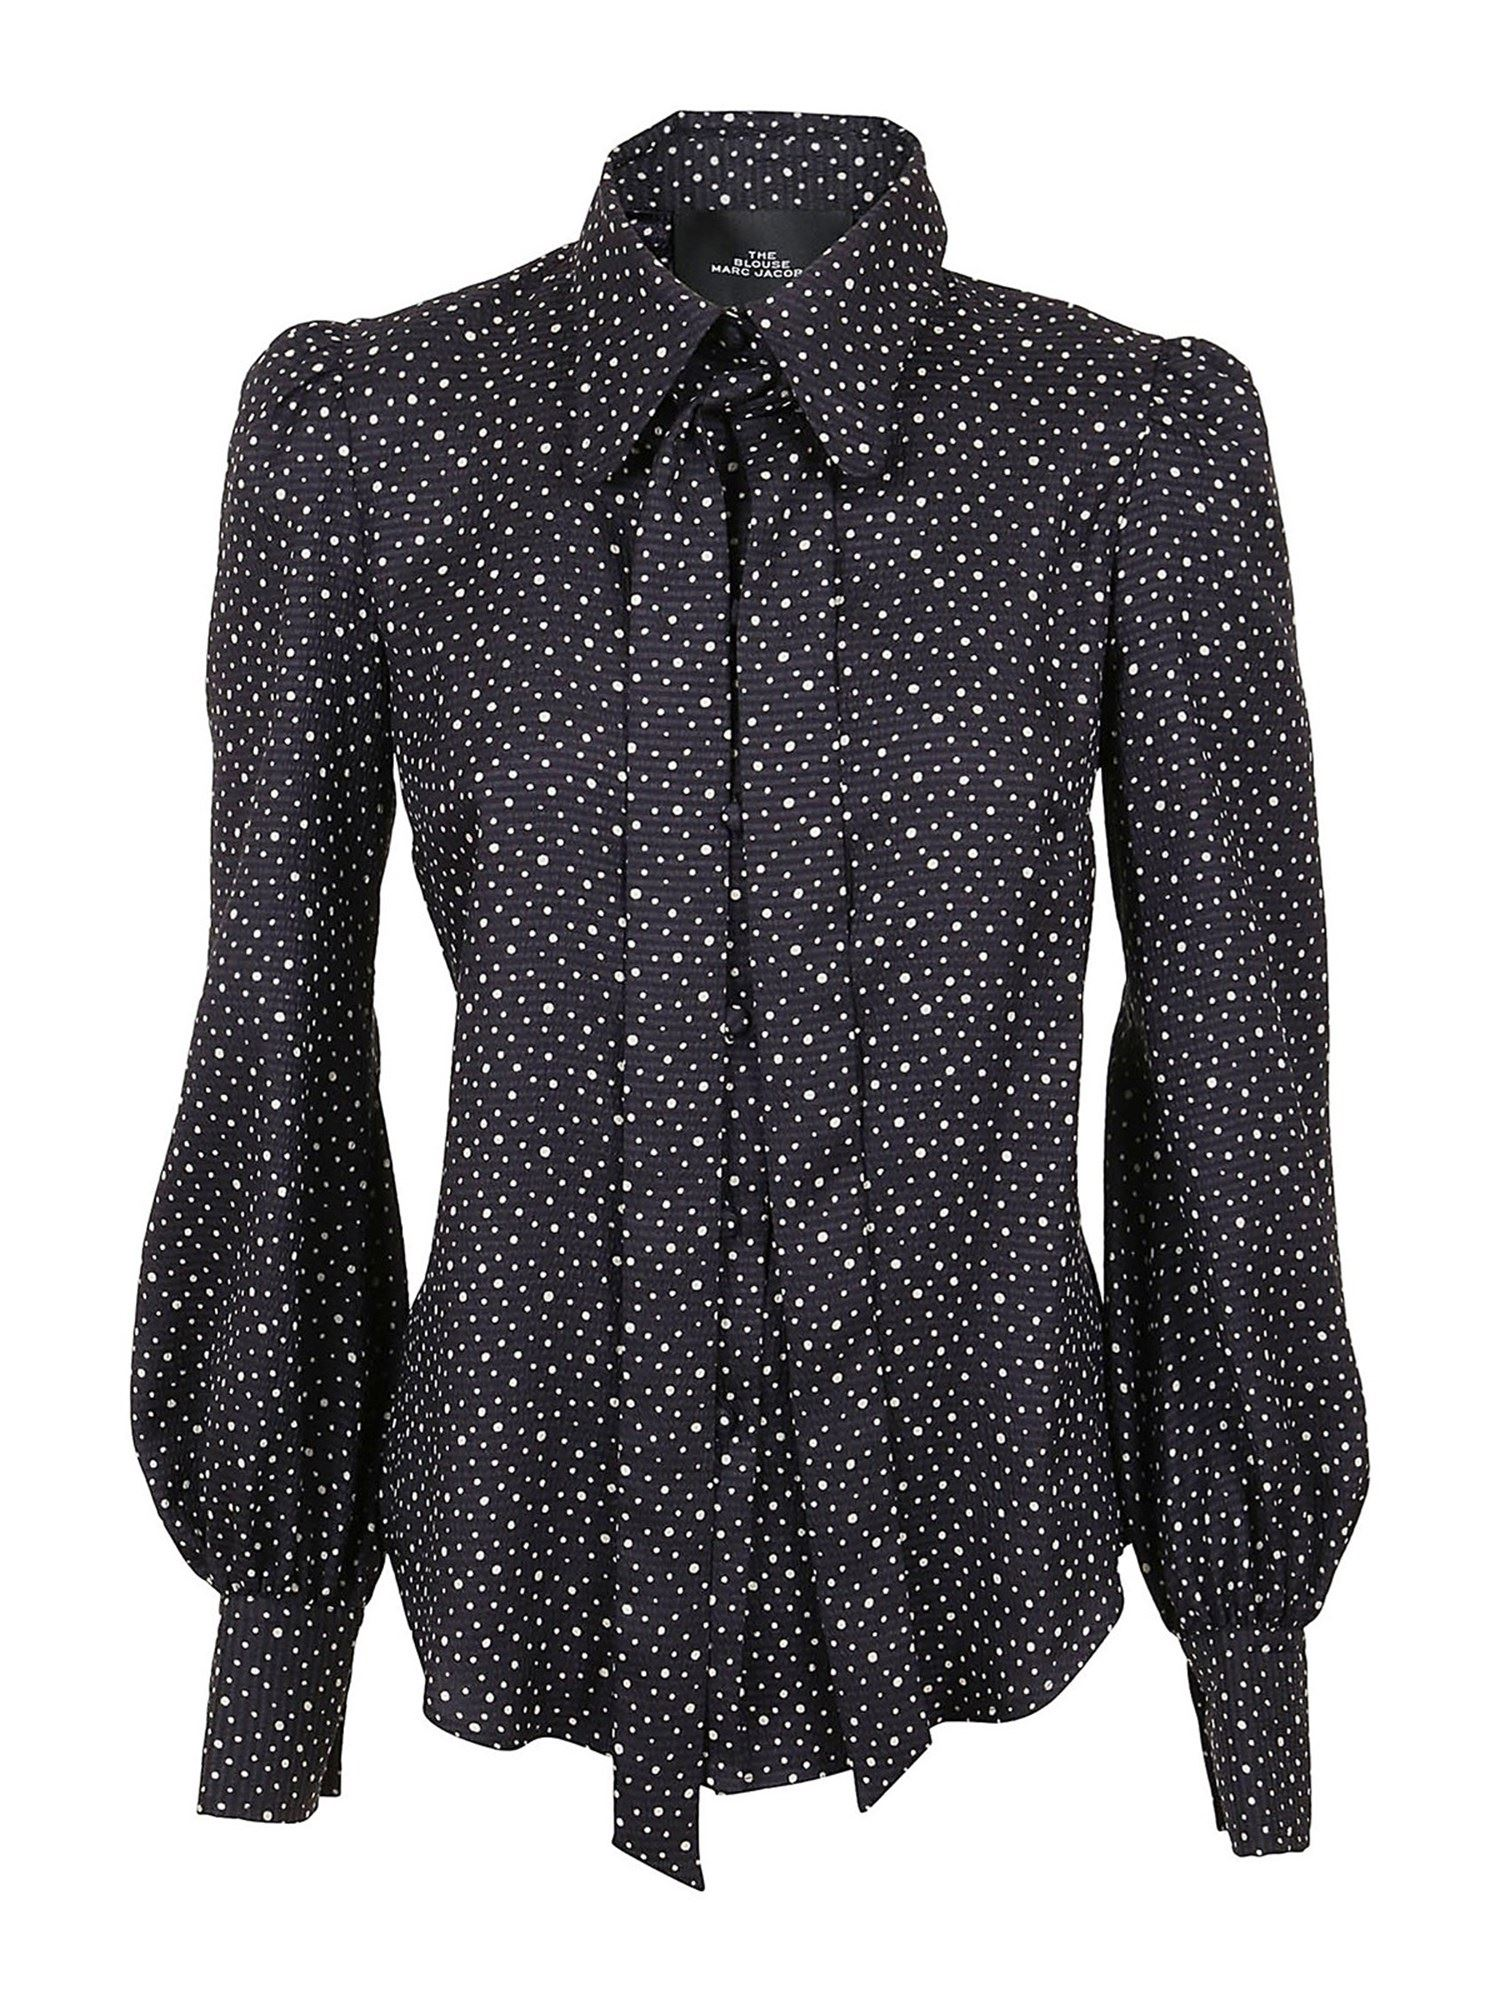 Marc Jacobs THE BLOUSE SHIRT IN BLUE